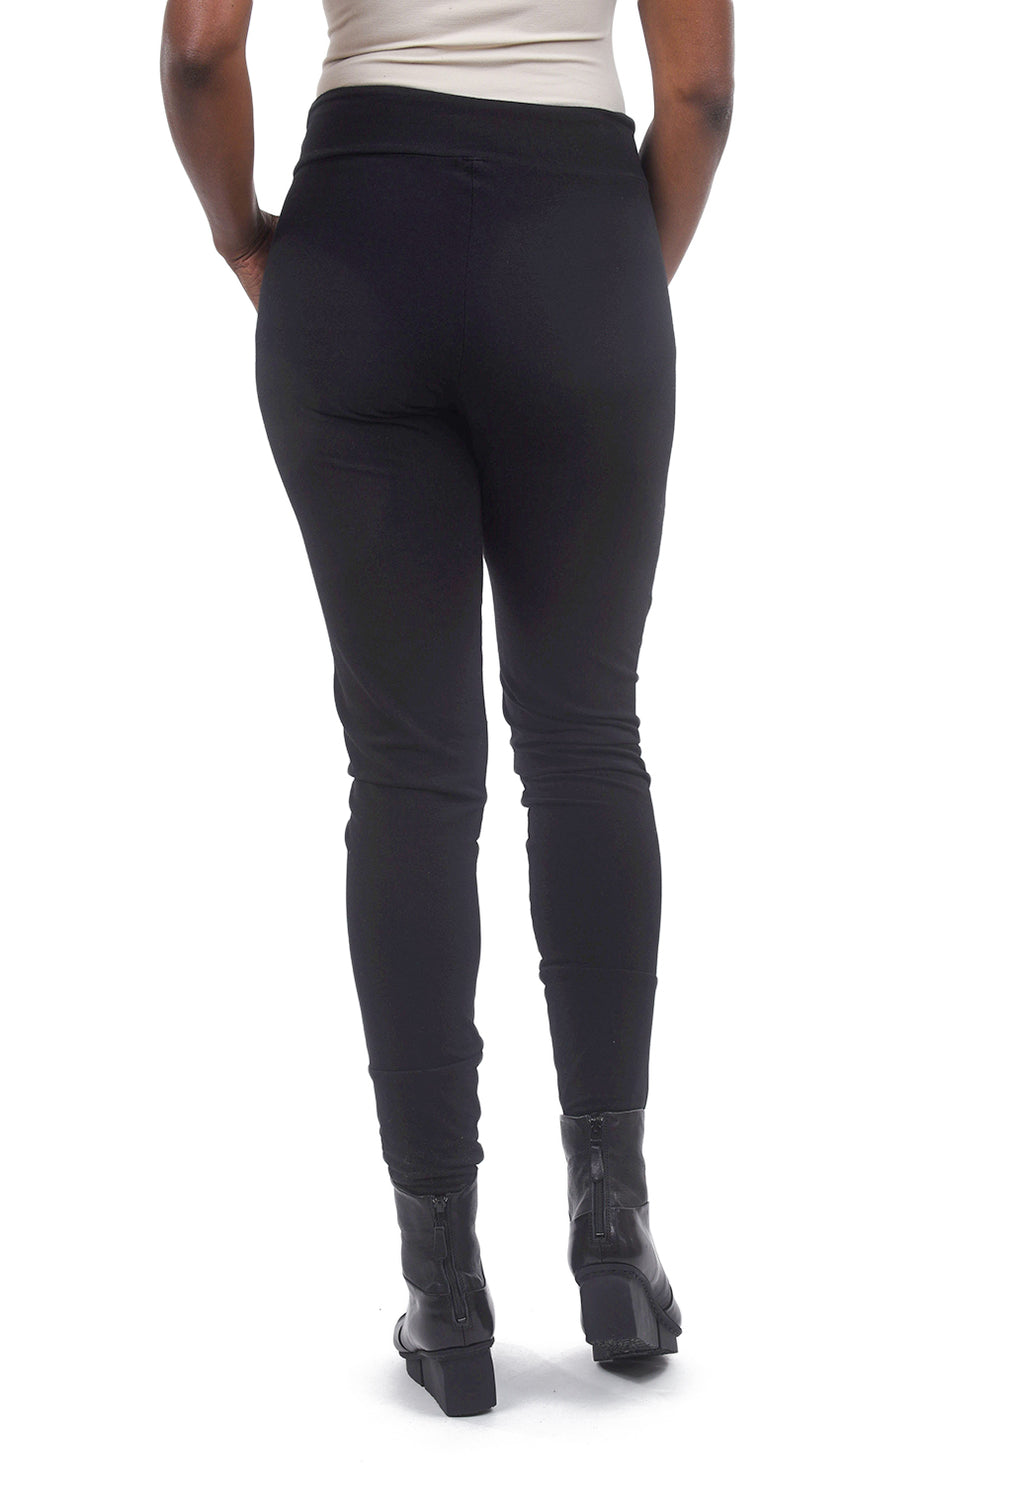 Cynthia Ashby Knit Cuff Leggings, Black